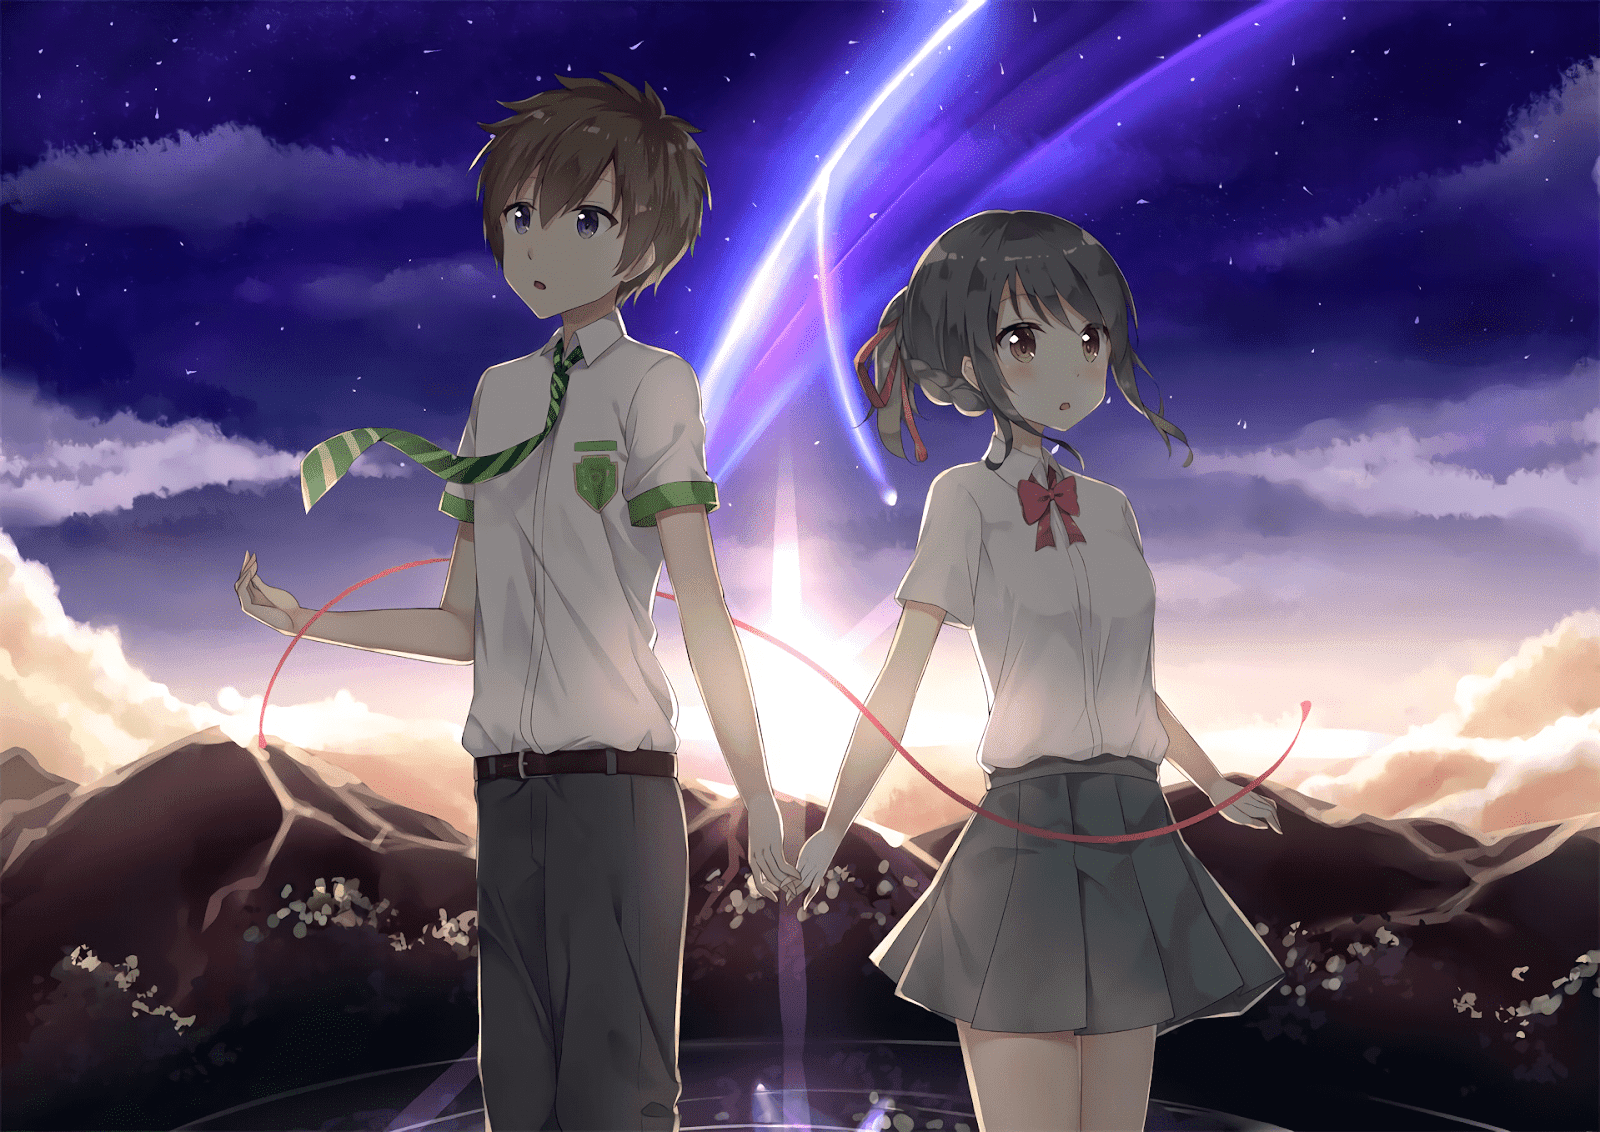 AowVN%2B%252853%2529 - [ Hình Nền ] Anime Your Name. - Kimi no Nawa full HD cực đẹp | Anime Wallpaper